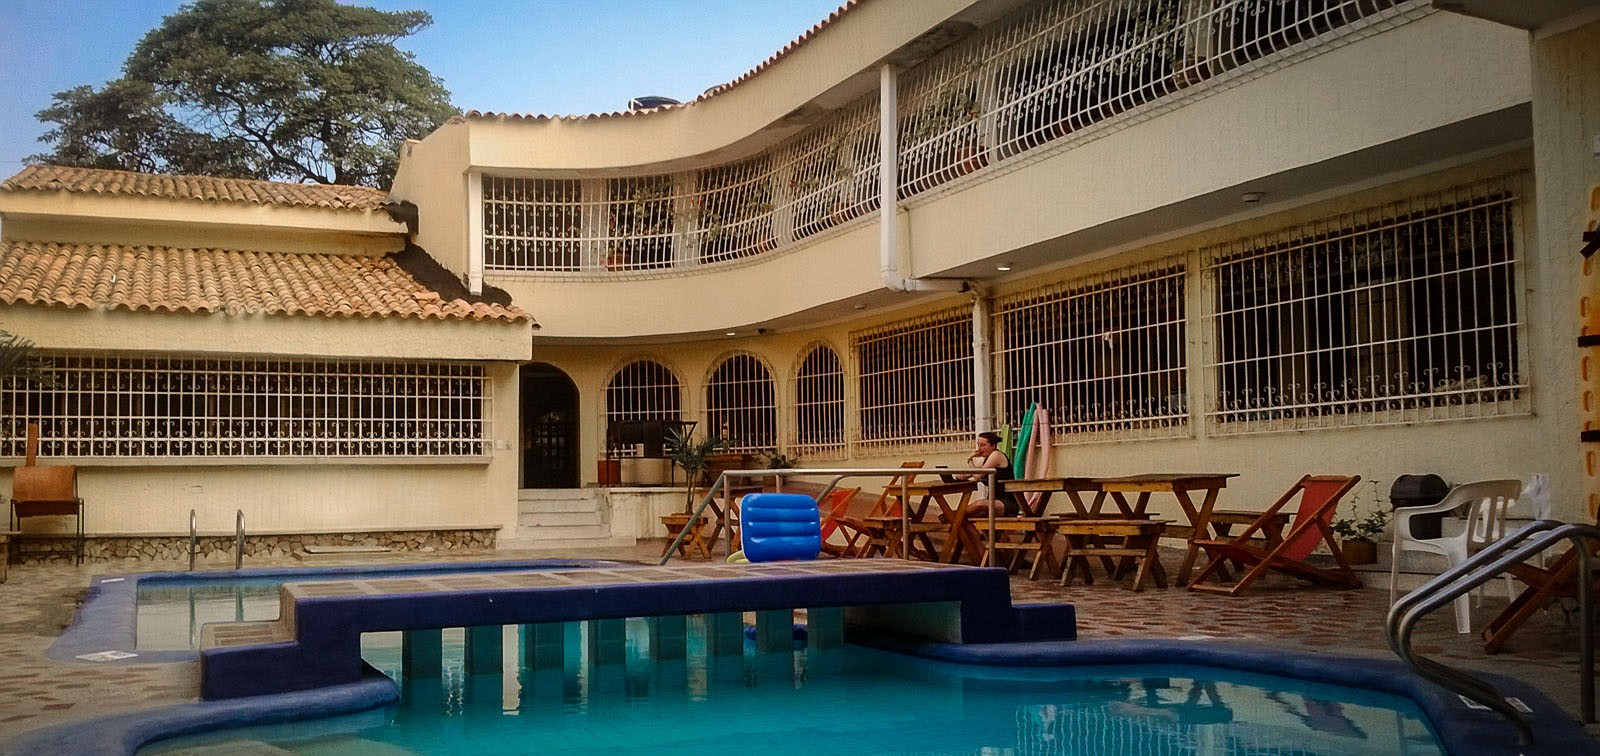 Our Stay in an ExCartel Mansion in Santa Marta Colombia